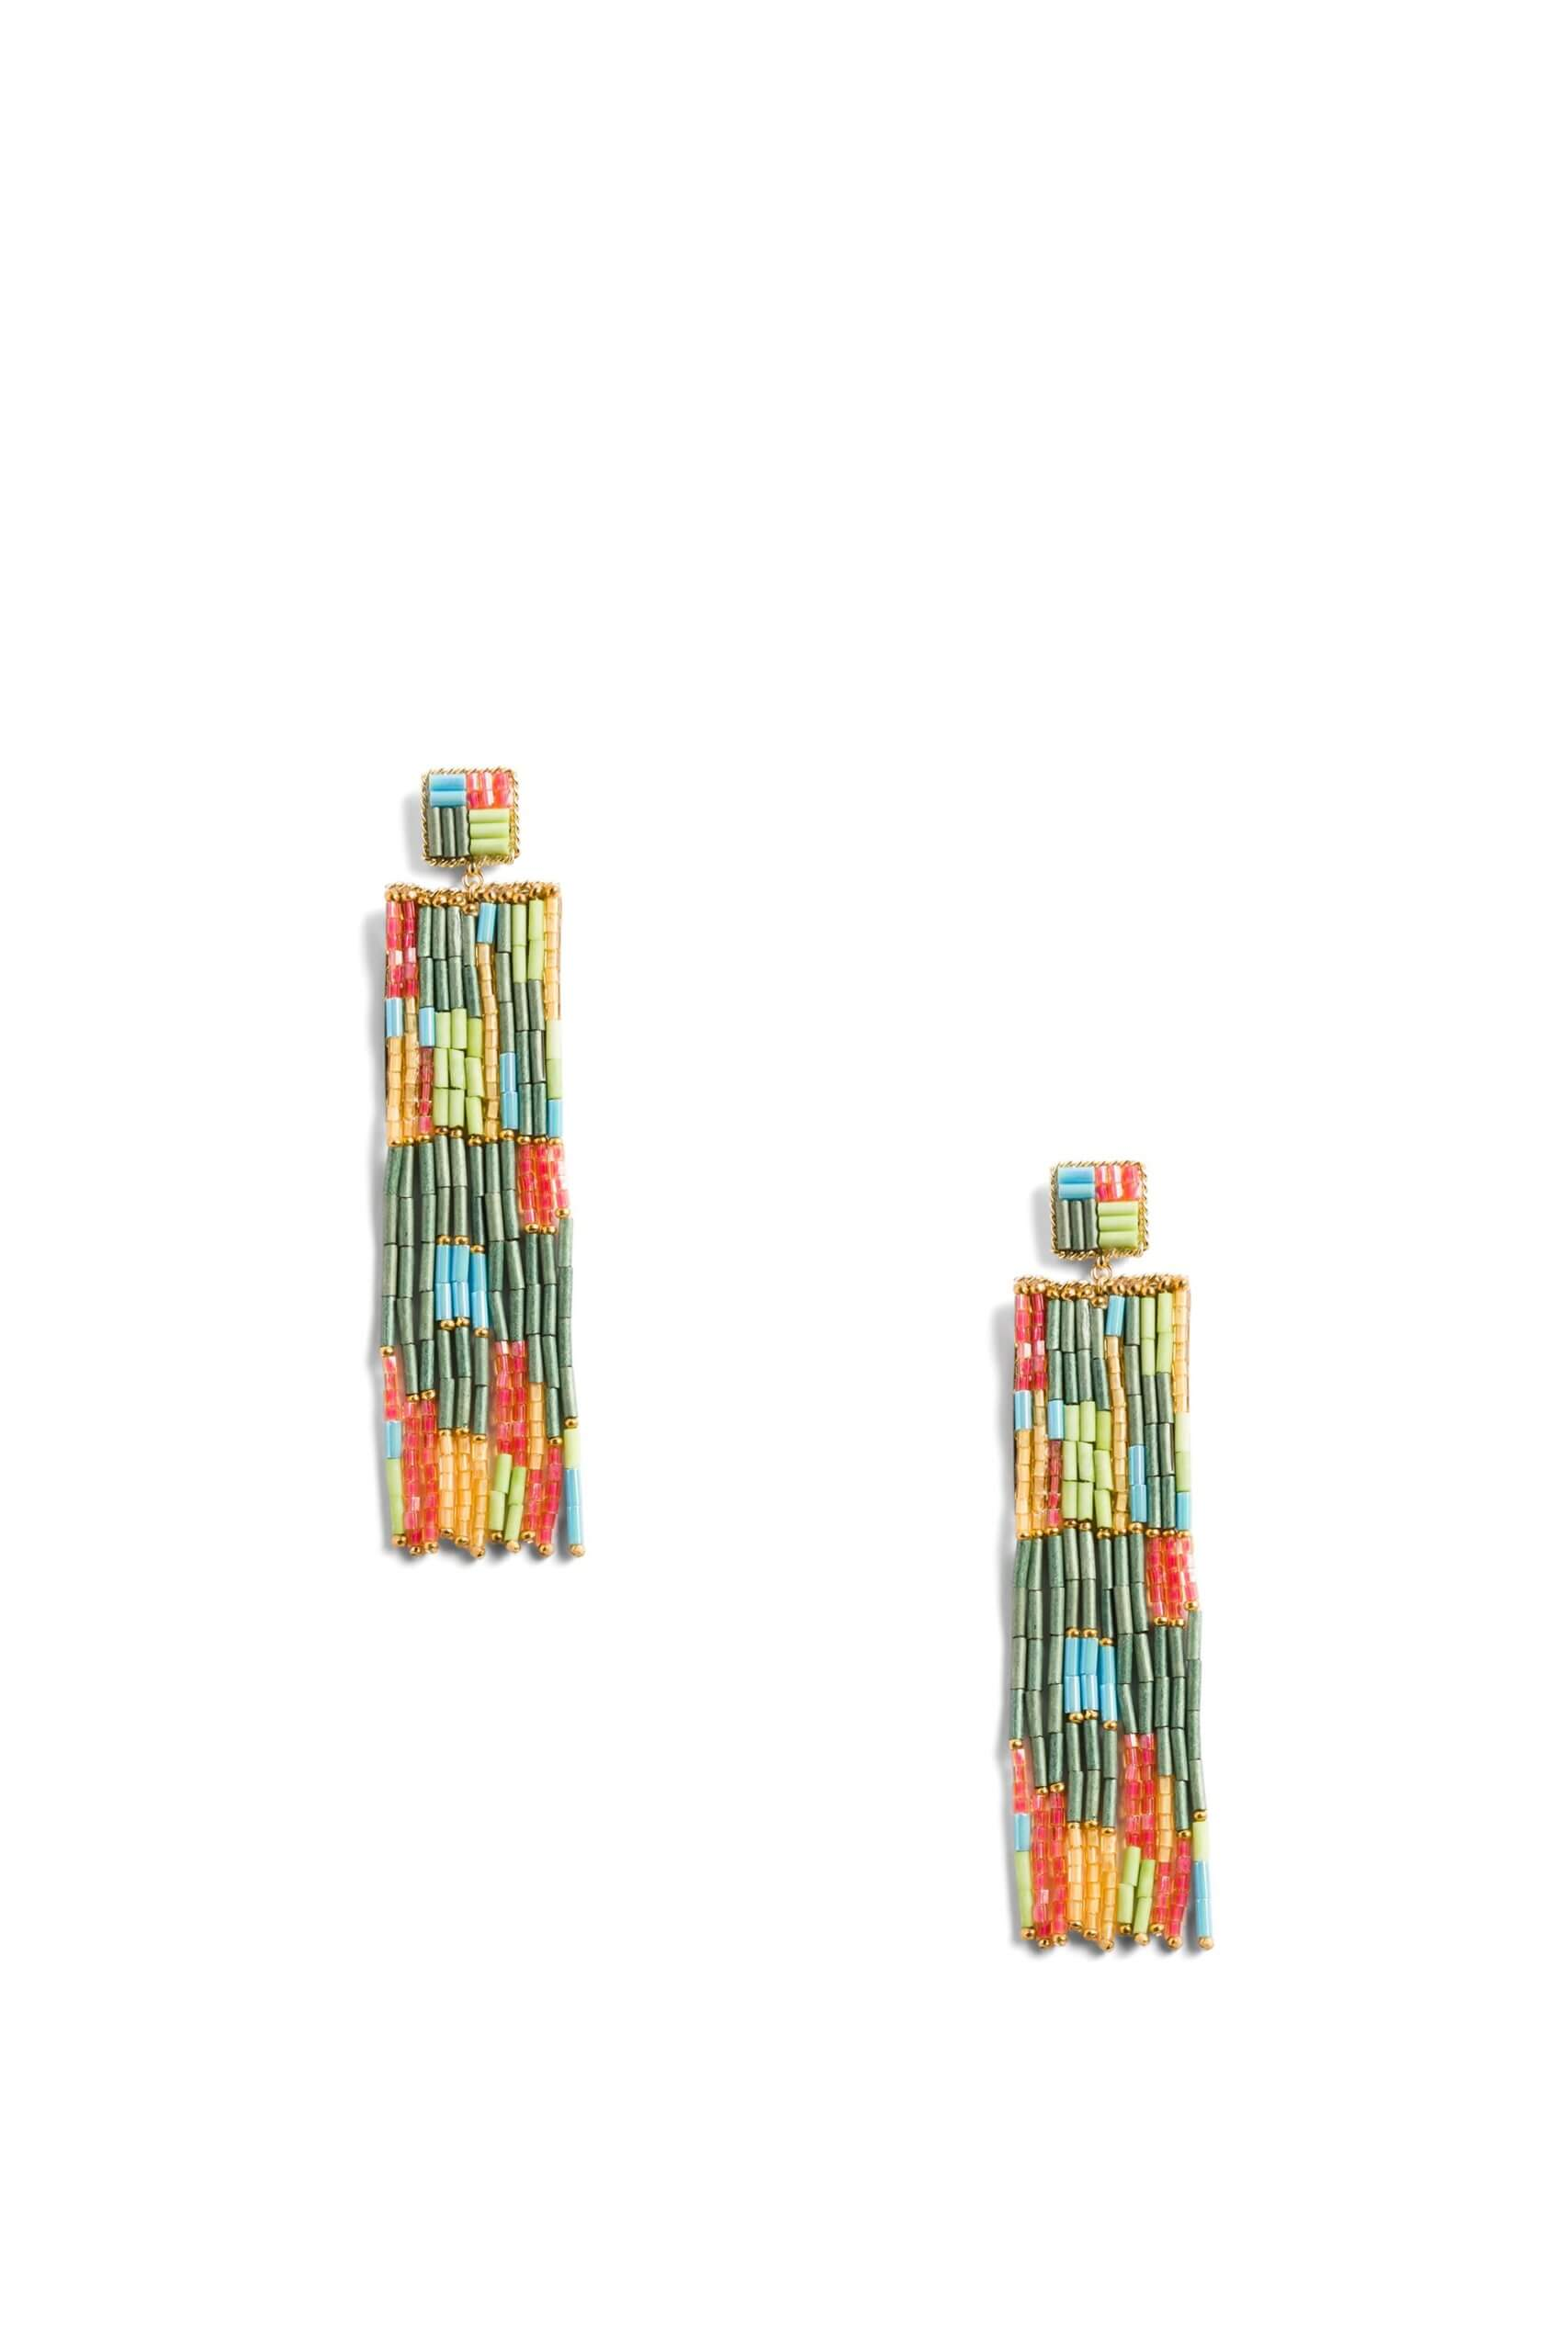 Stitch Fix women's beaded fringe earrings in green, yellow, turquoise and orange.